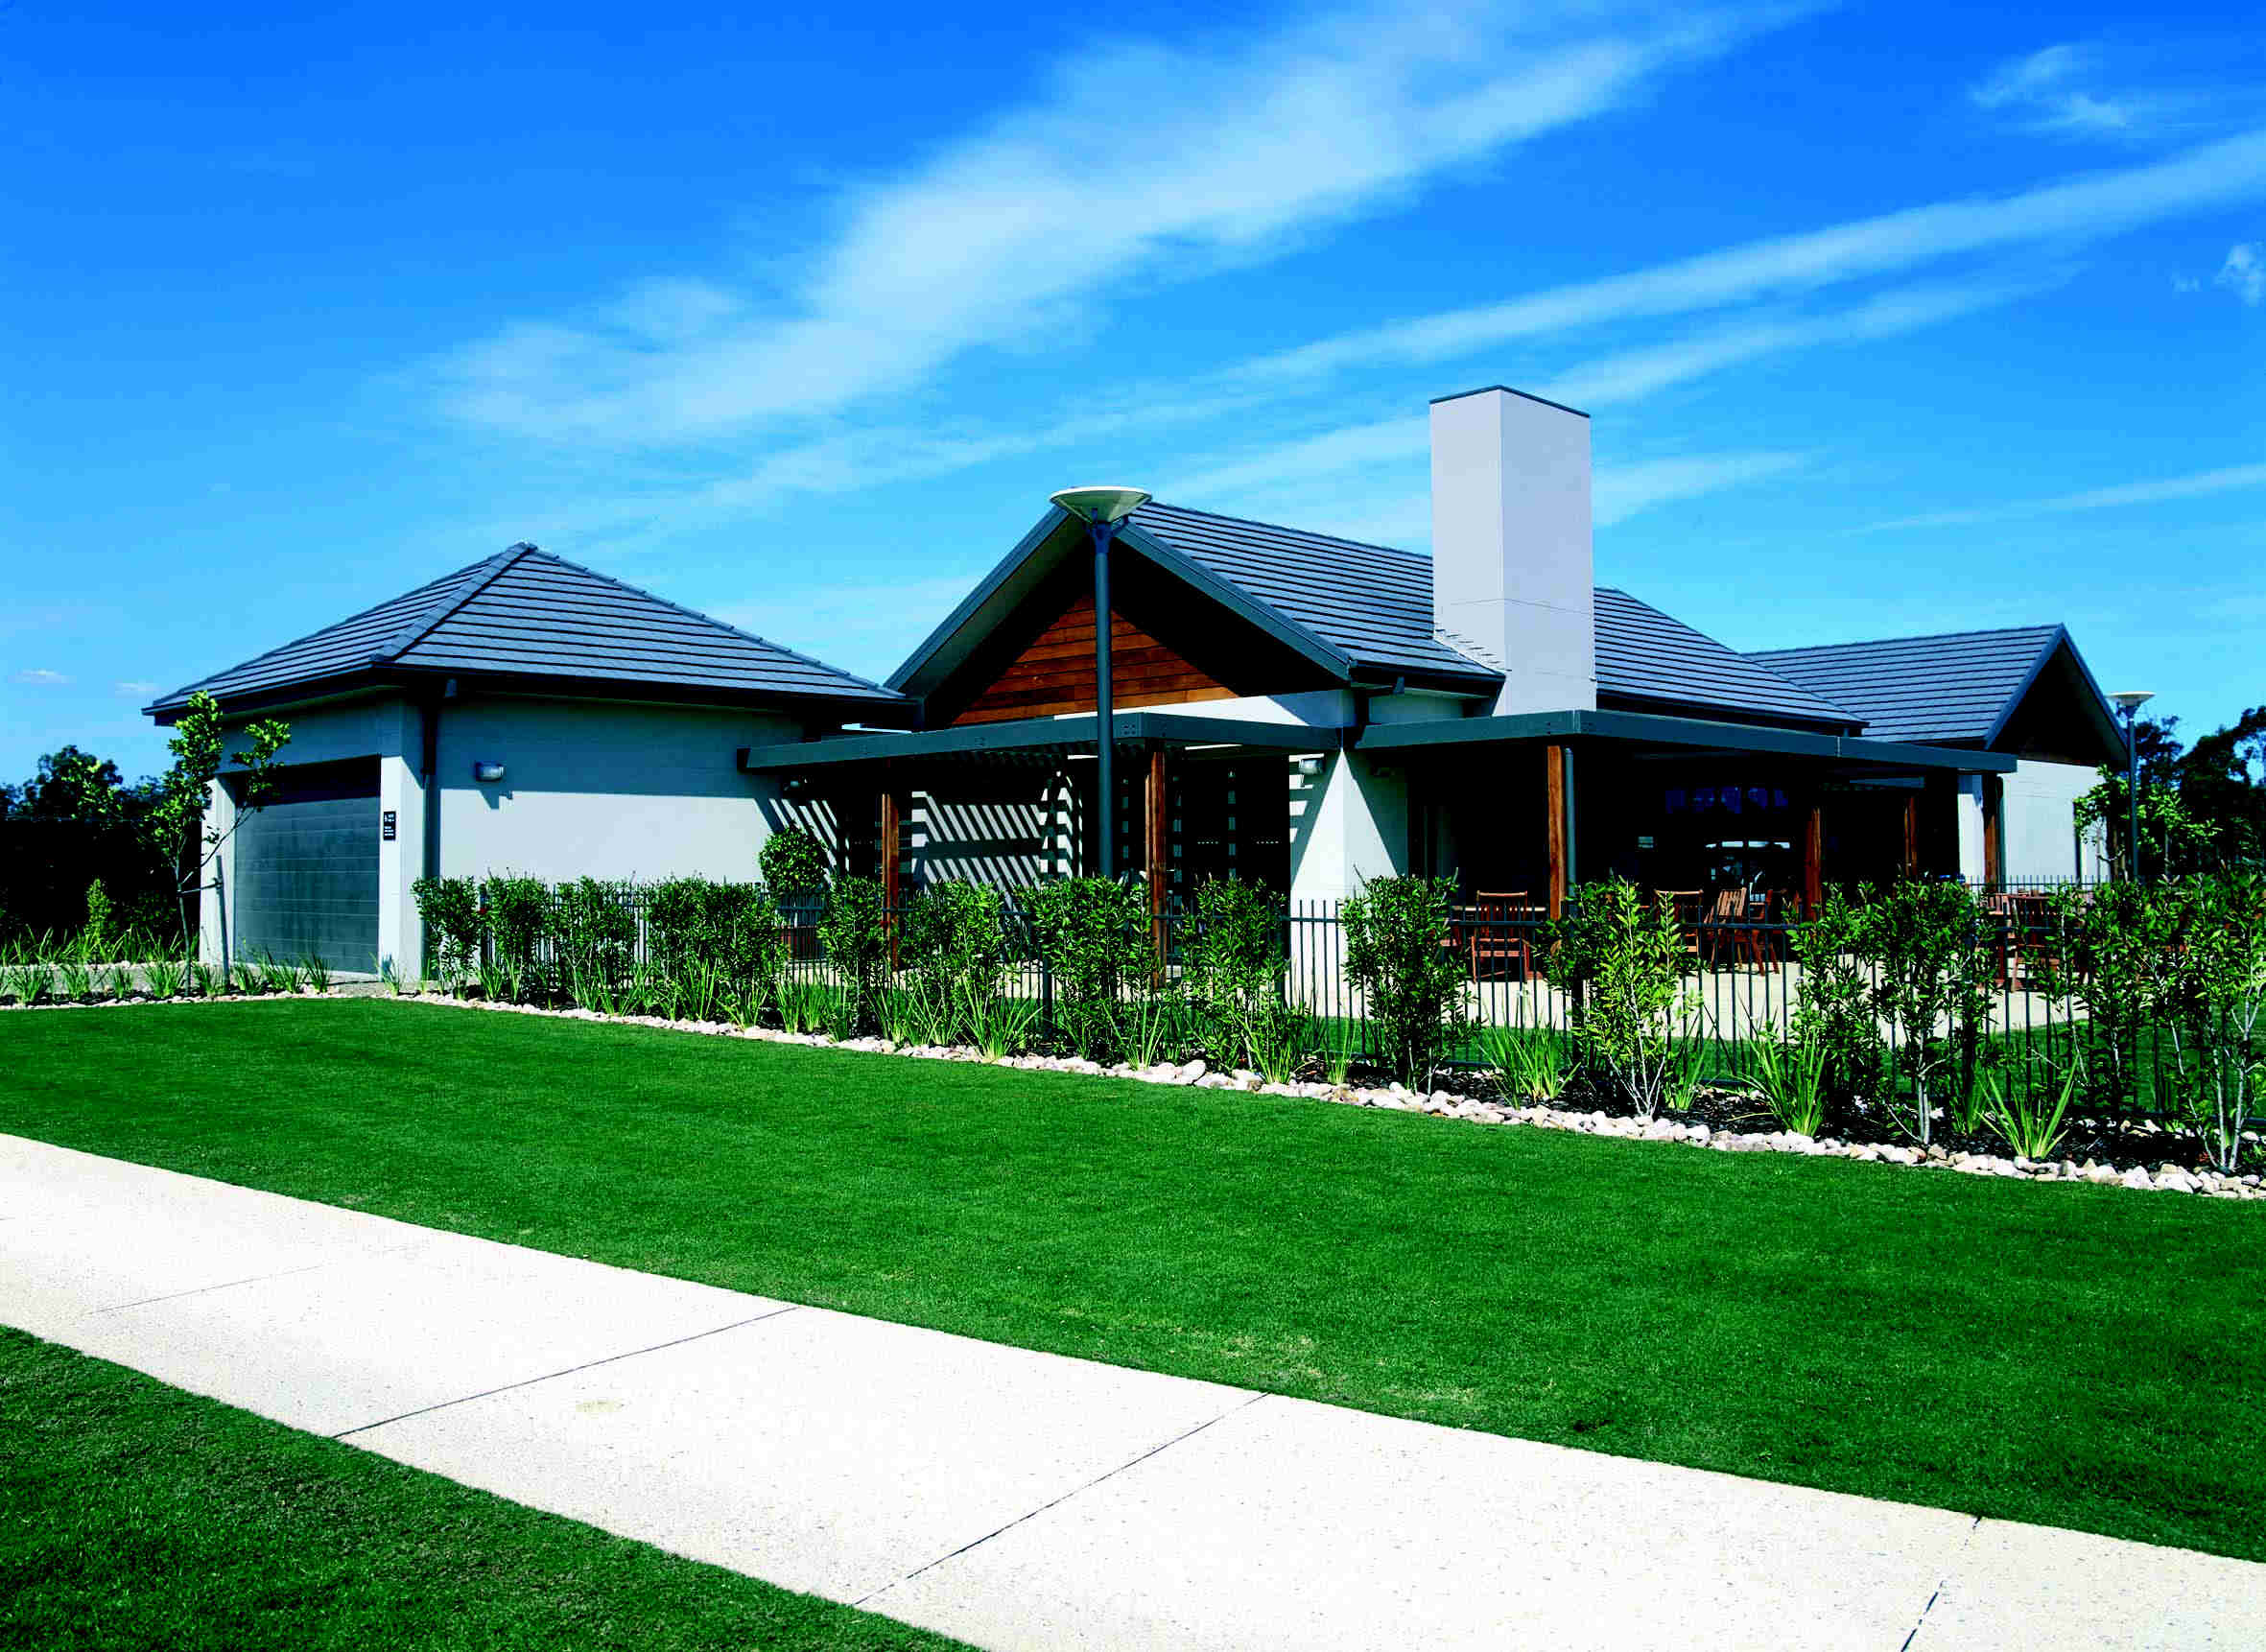 The architect of the sydney superdome and the sydney aquatic centre has turned it sights on port stephens designing the fairway houses for pacific dunes